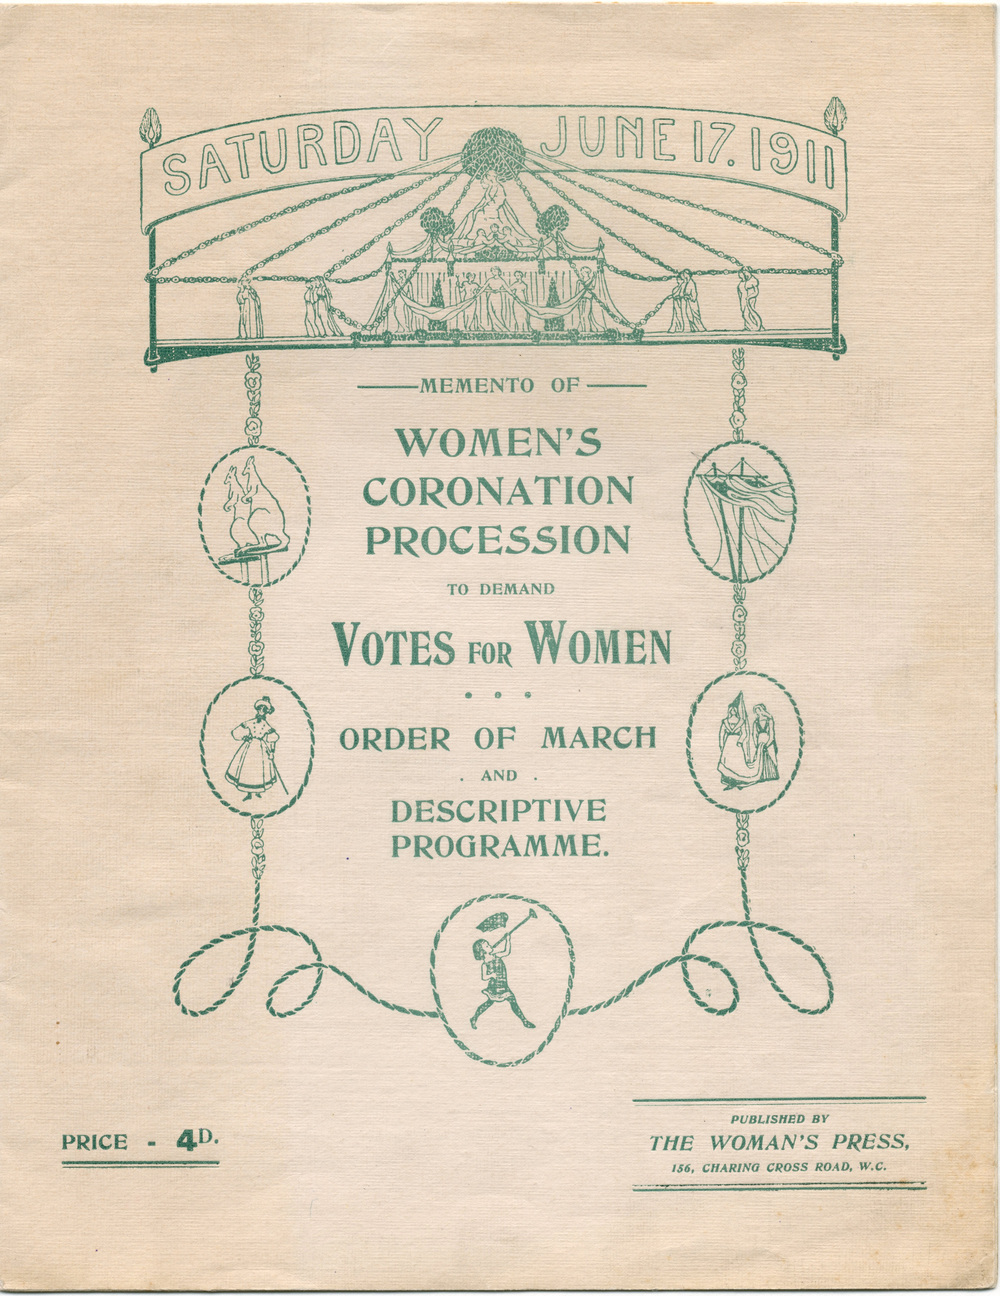 Memento of Women's Coronation Procession (17 June 1911)